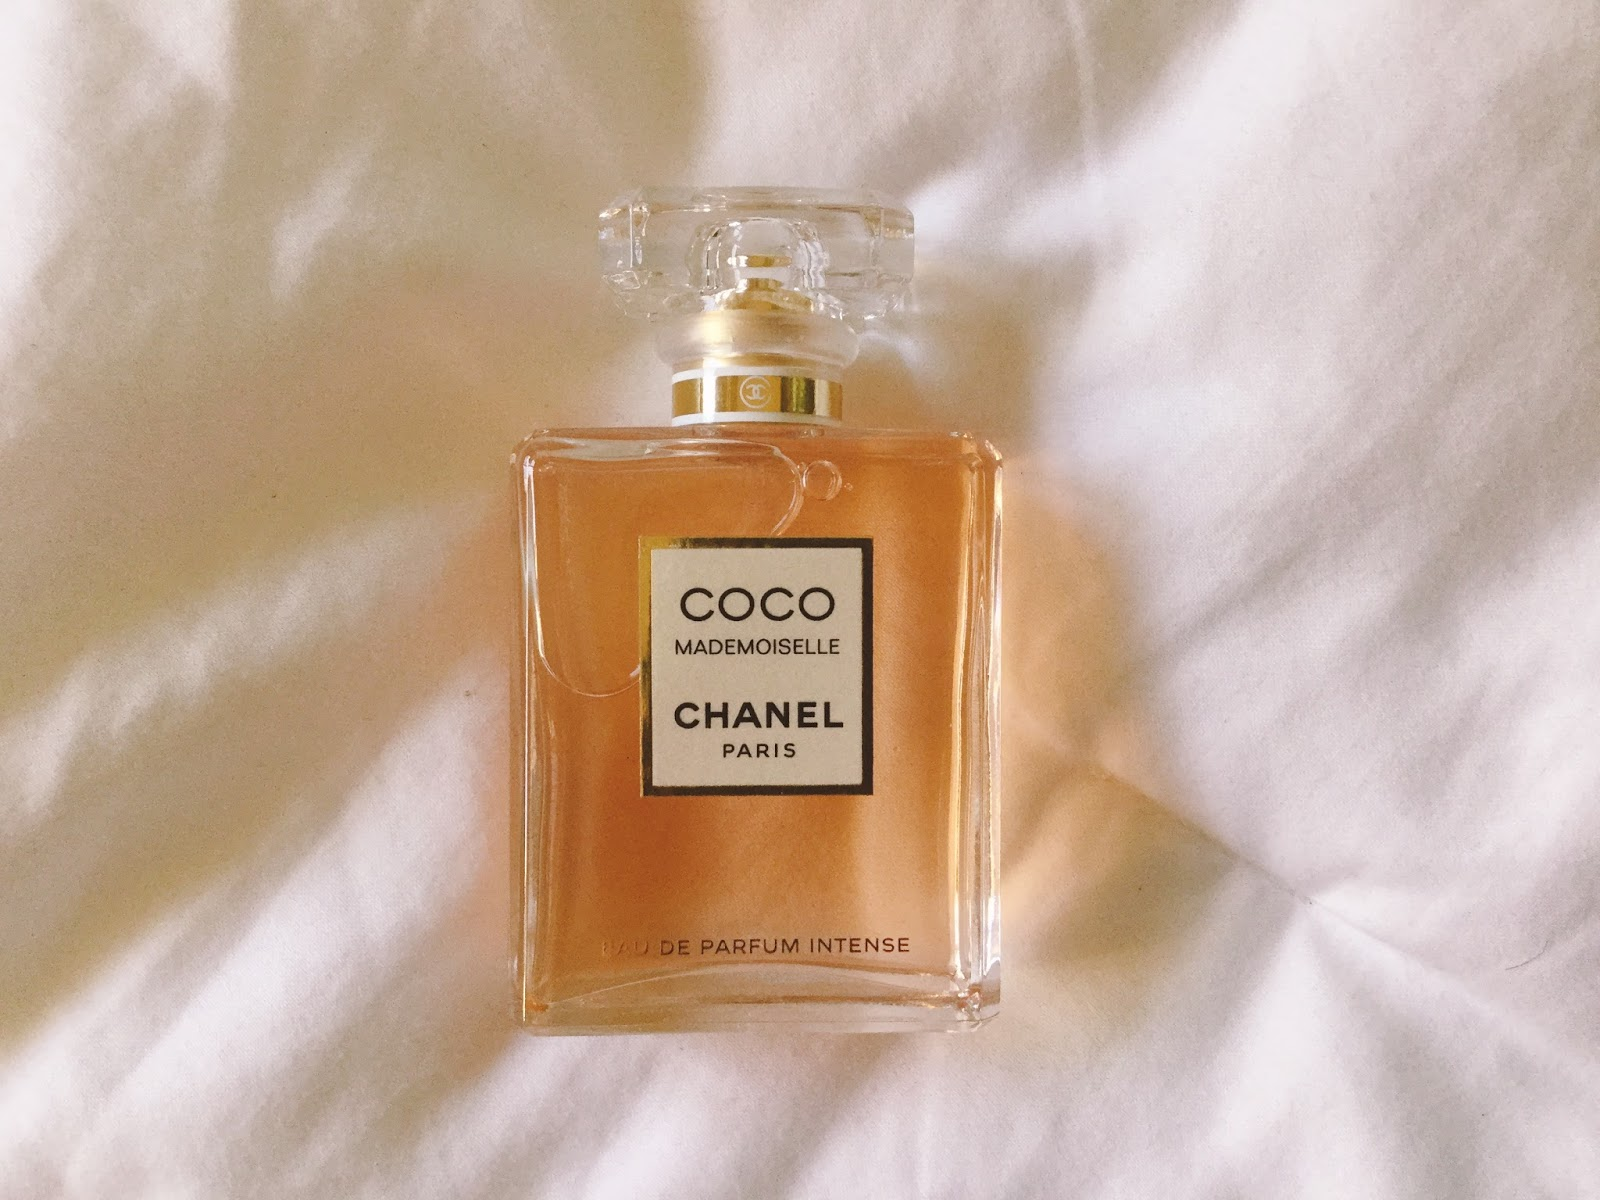 Perfume Review: Coco Mademoiselle by Chanel   Sincerely, Alice